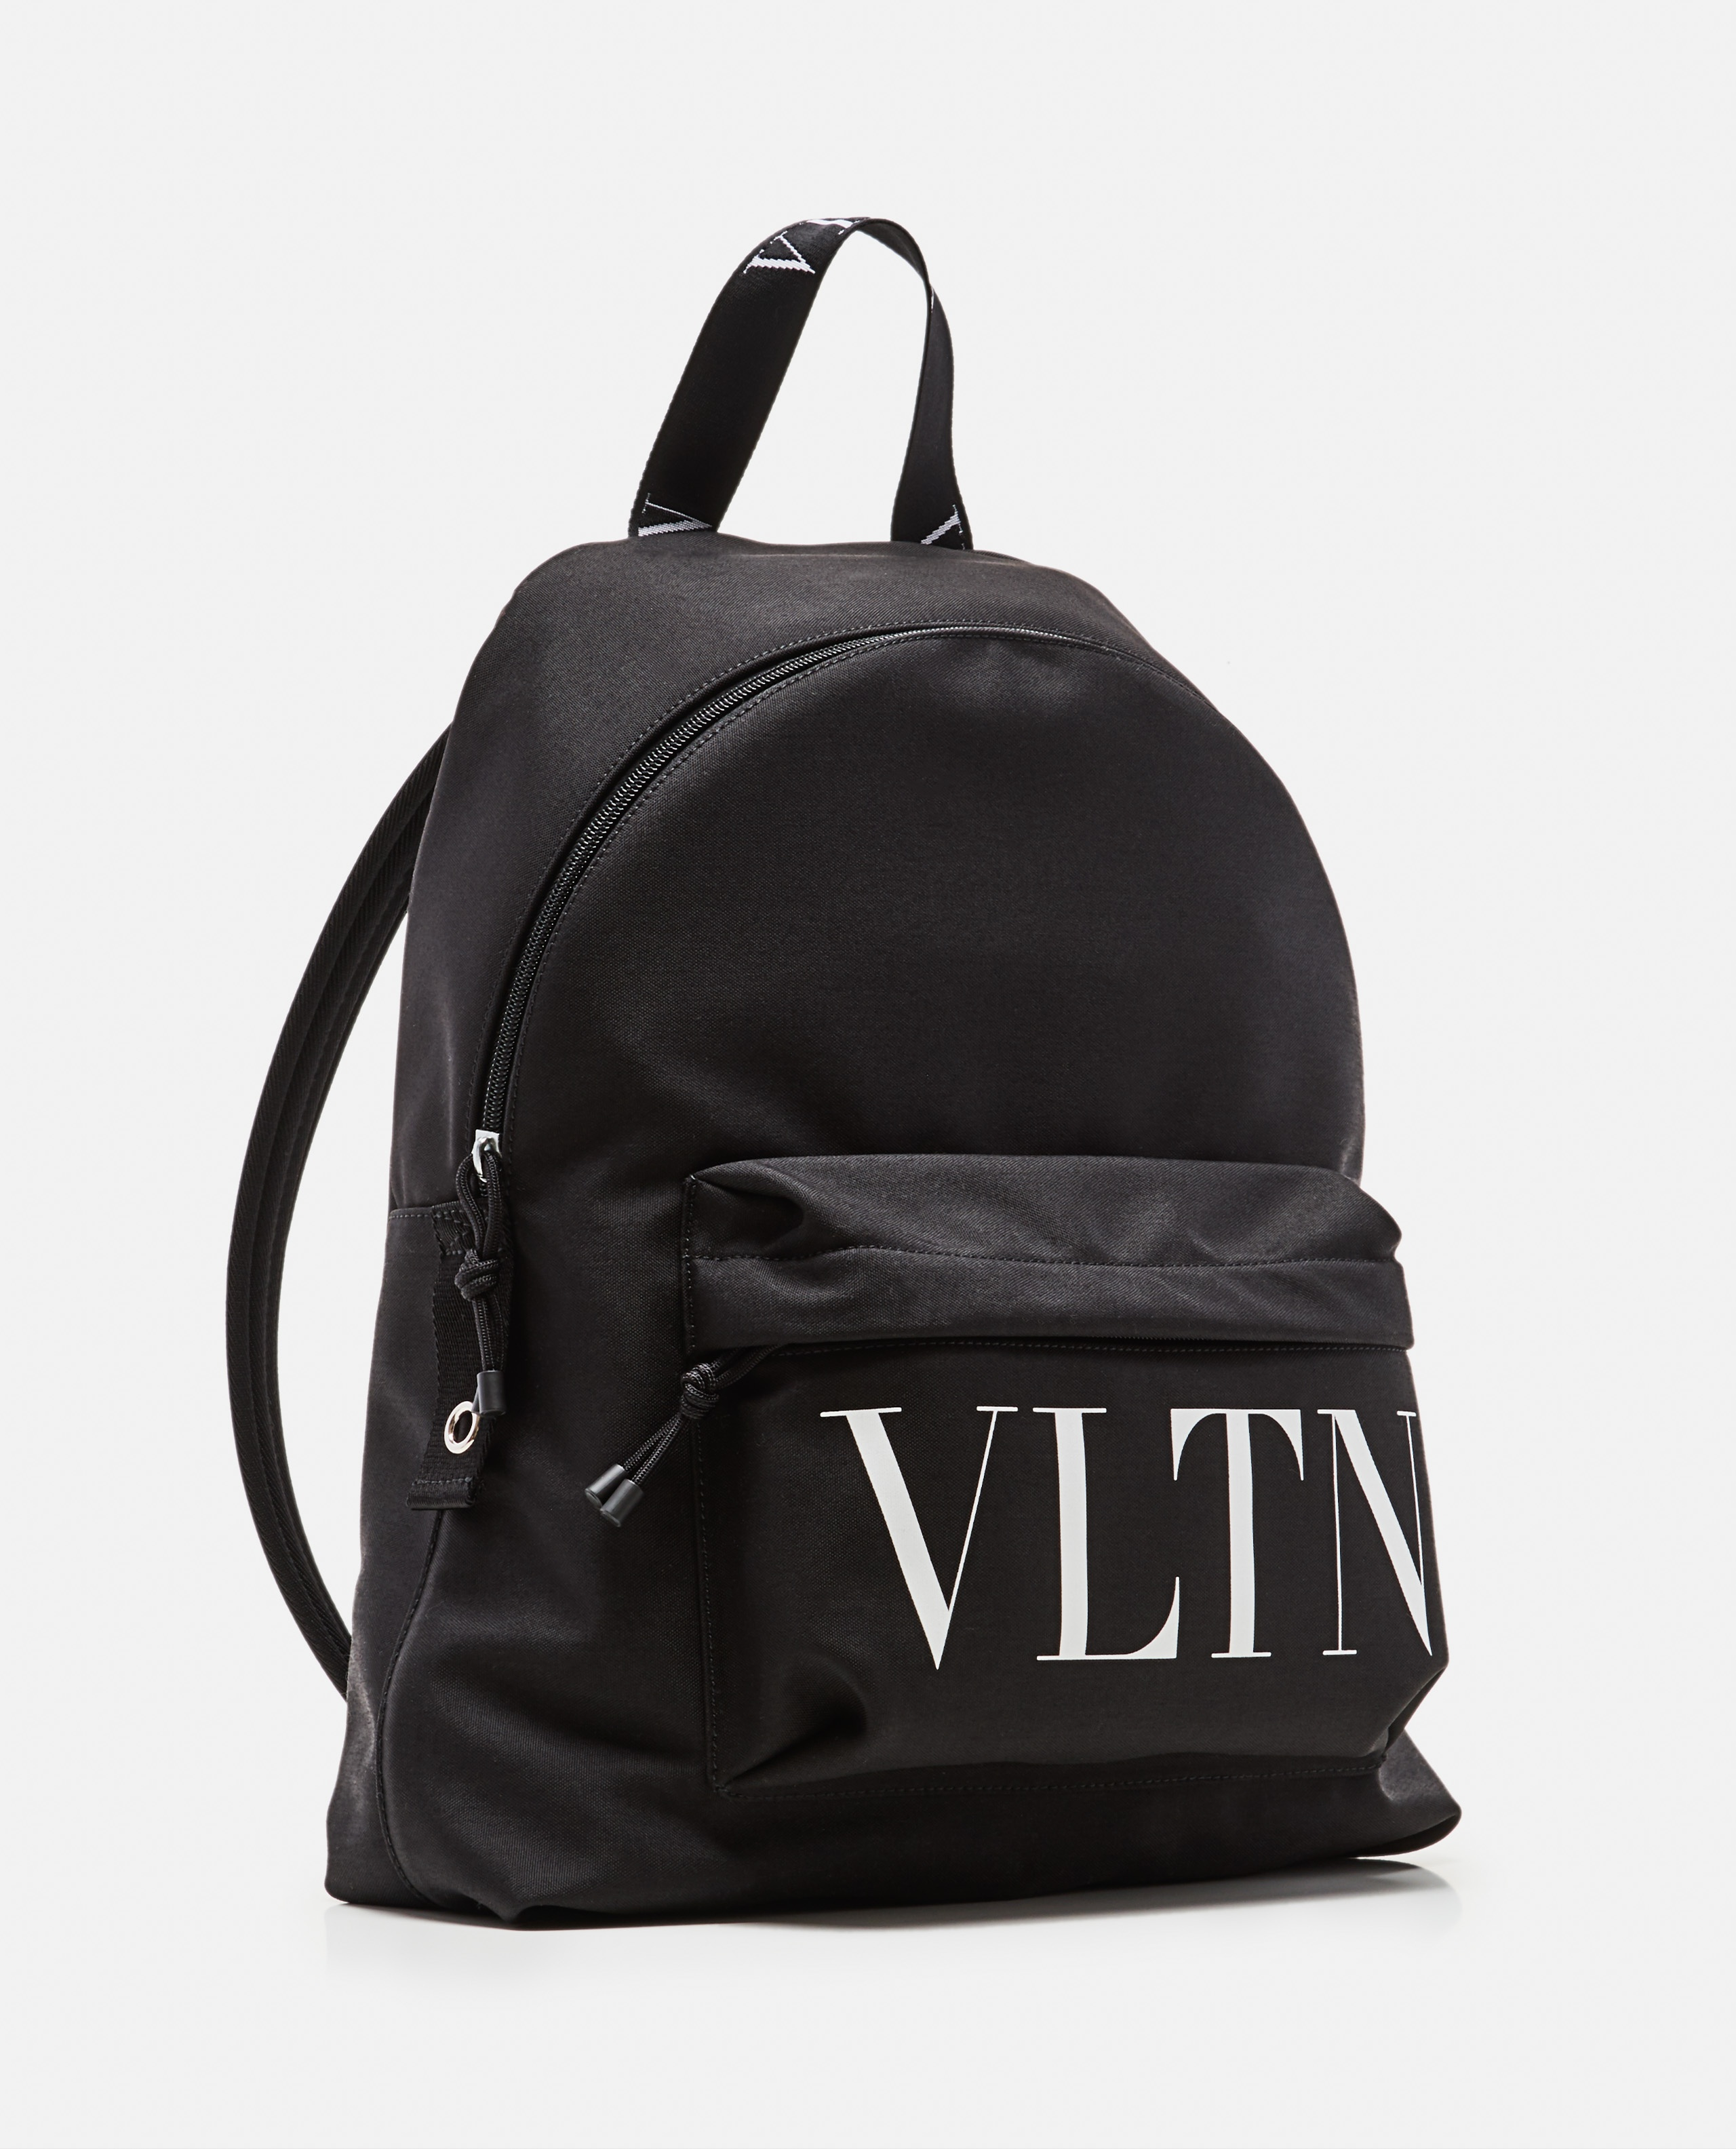 'VLTN' backpack Men Valentino 000263770038985 3